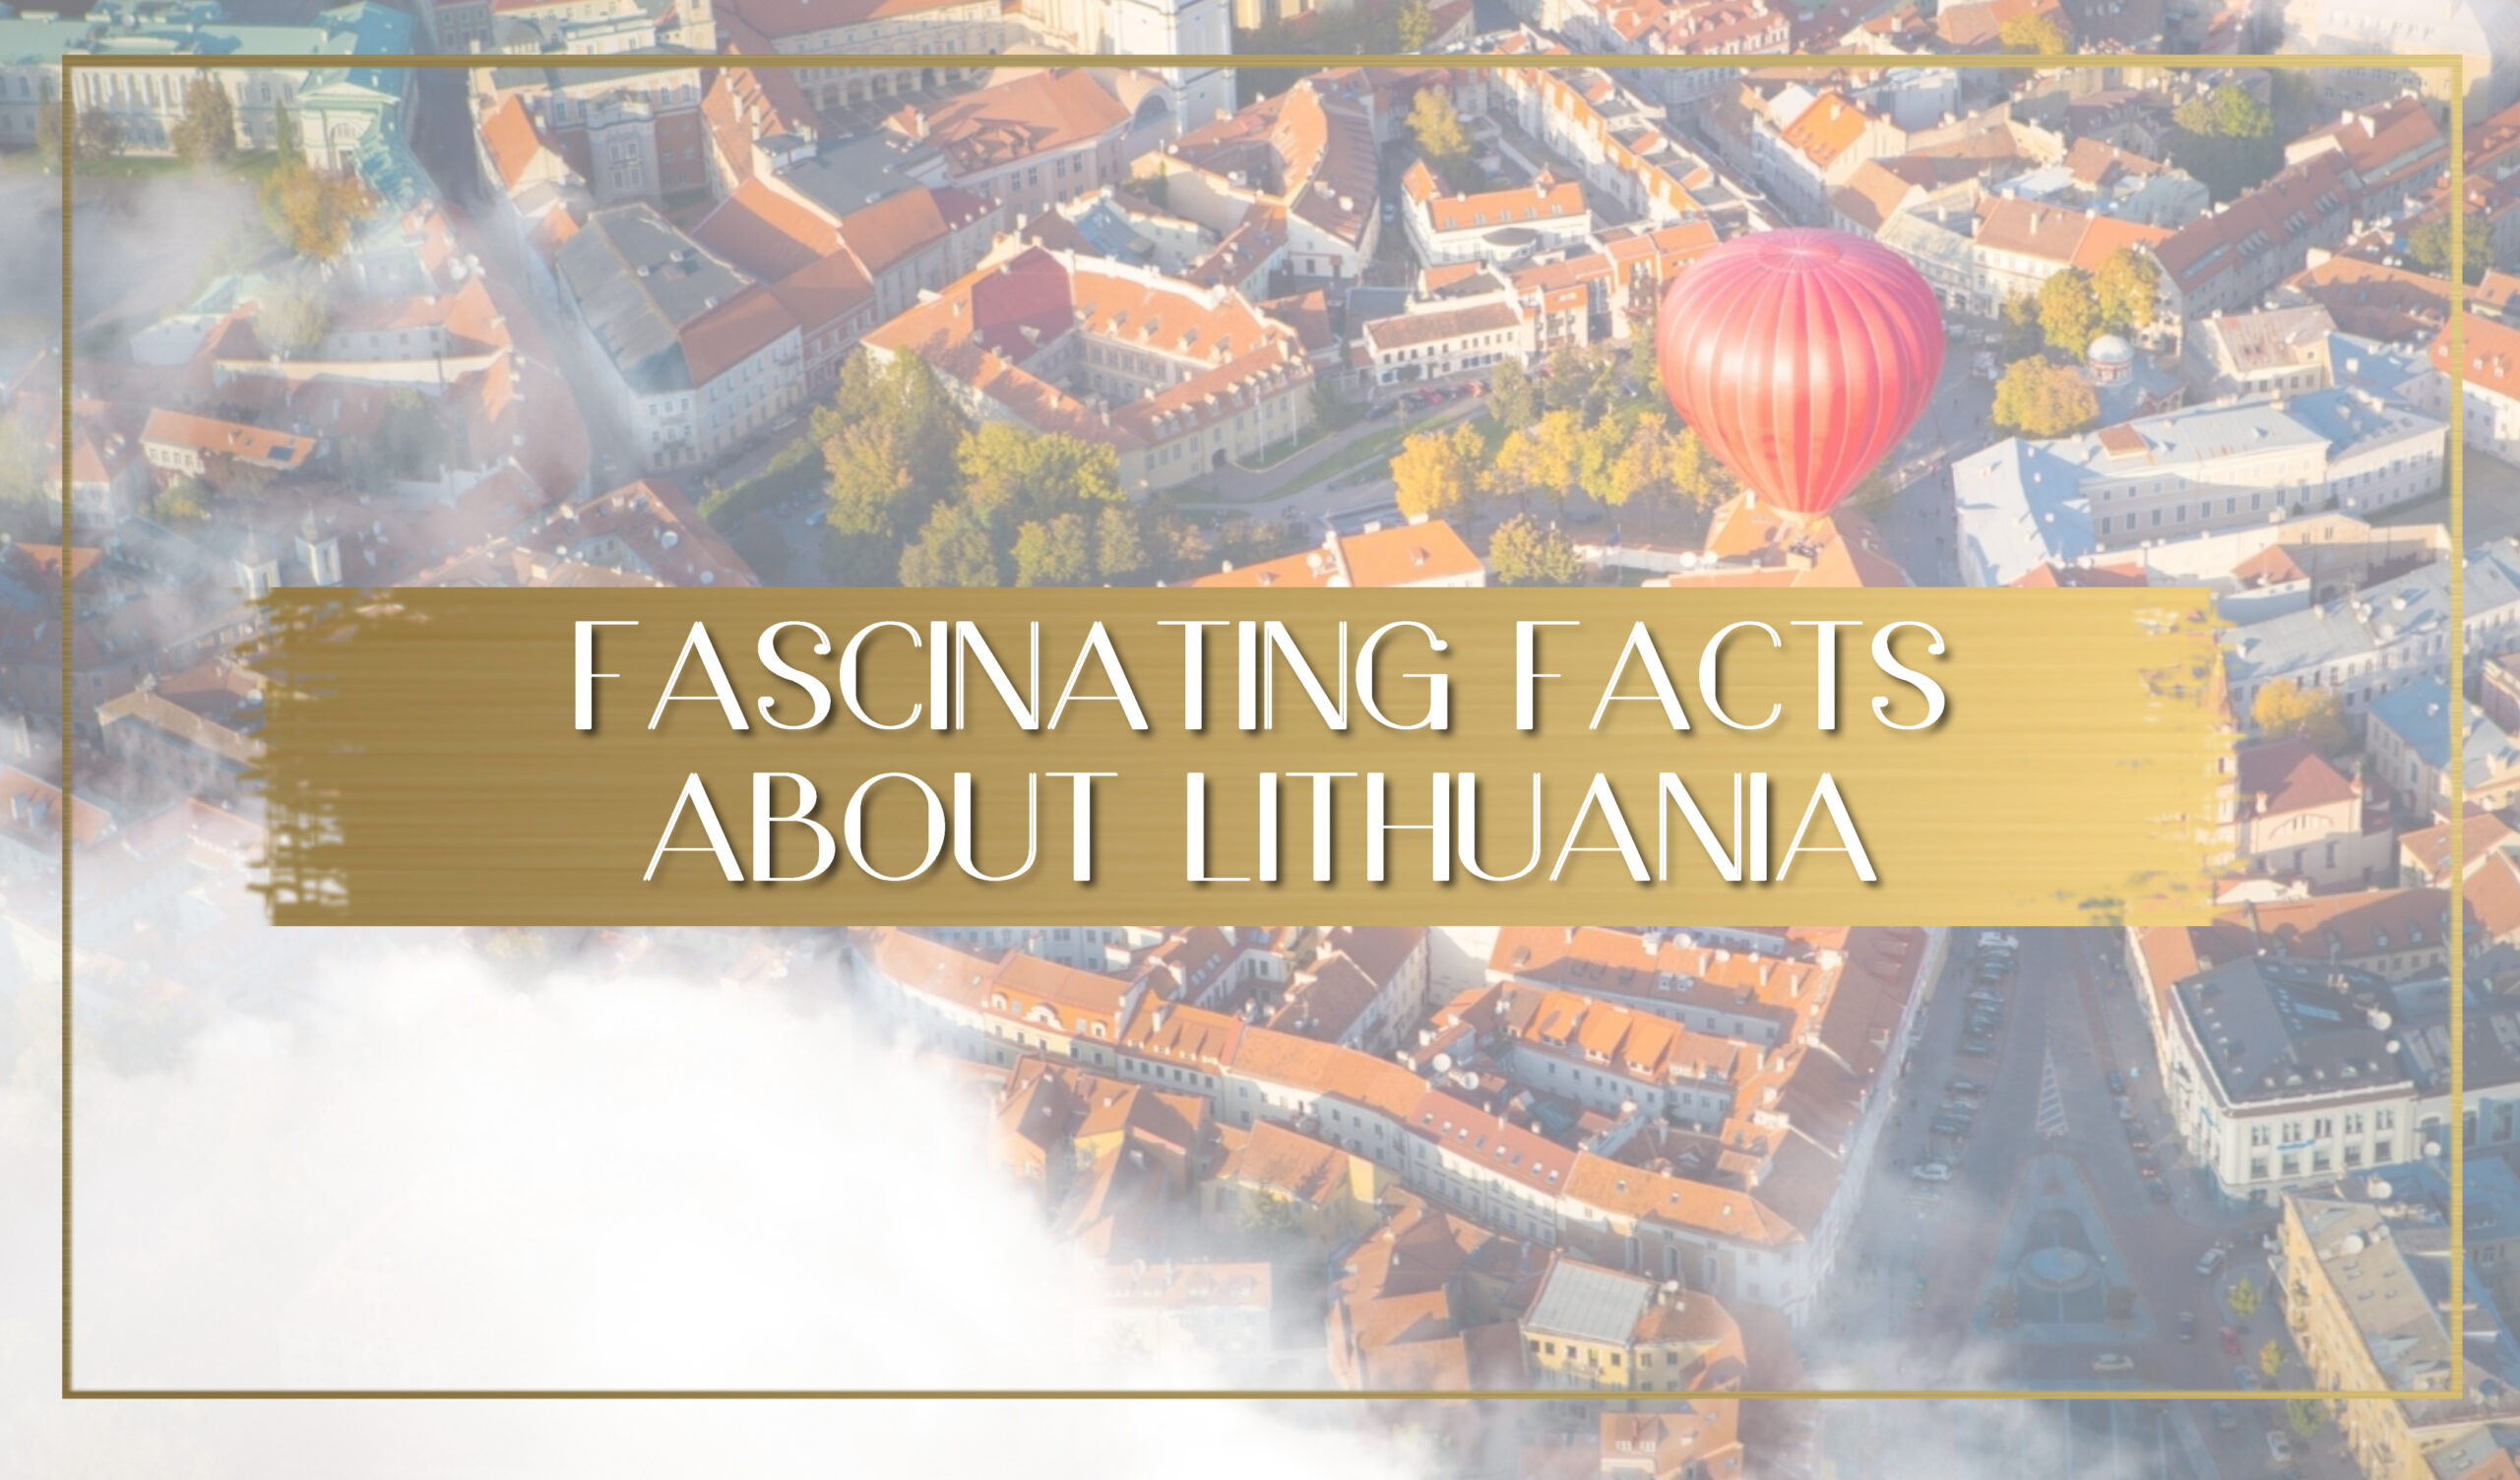 Facts about Lithuania main